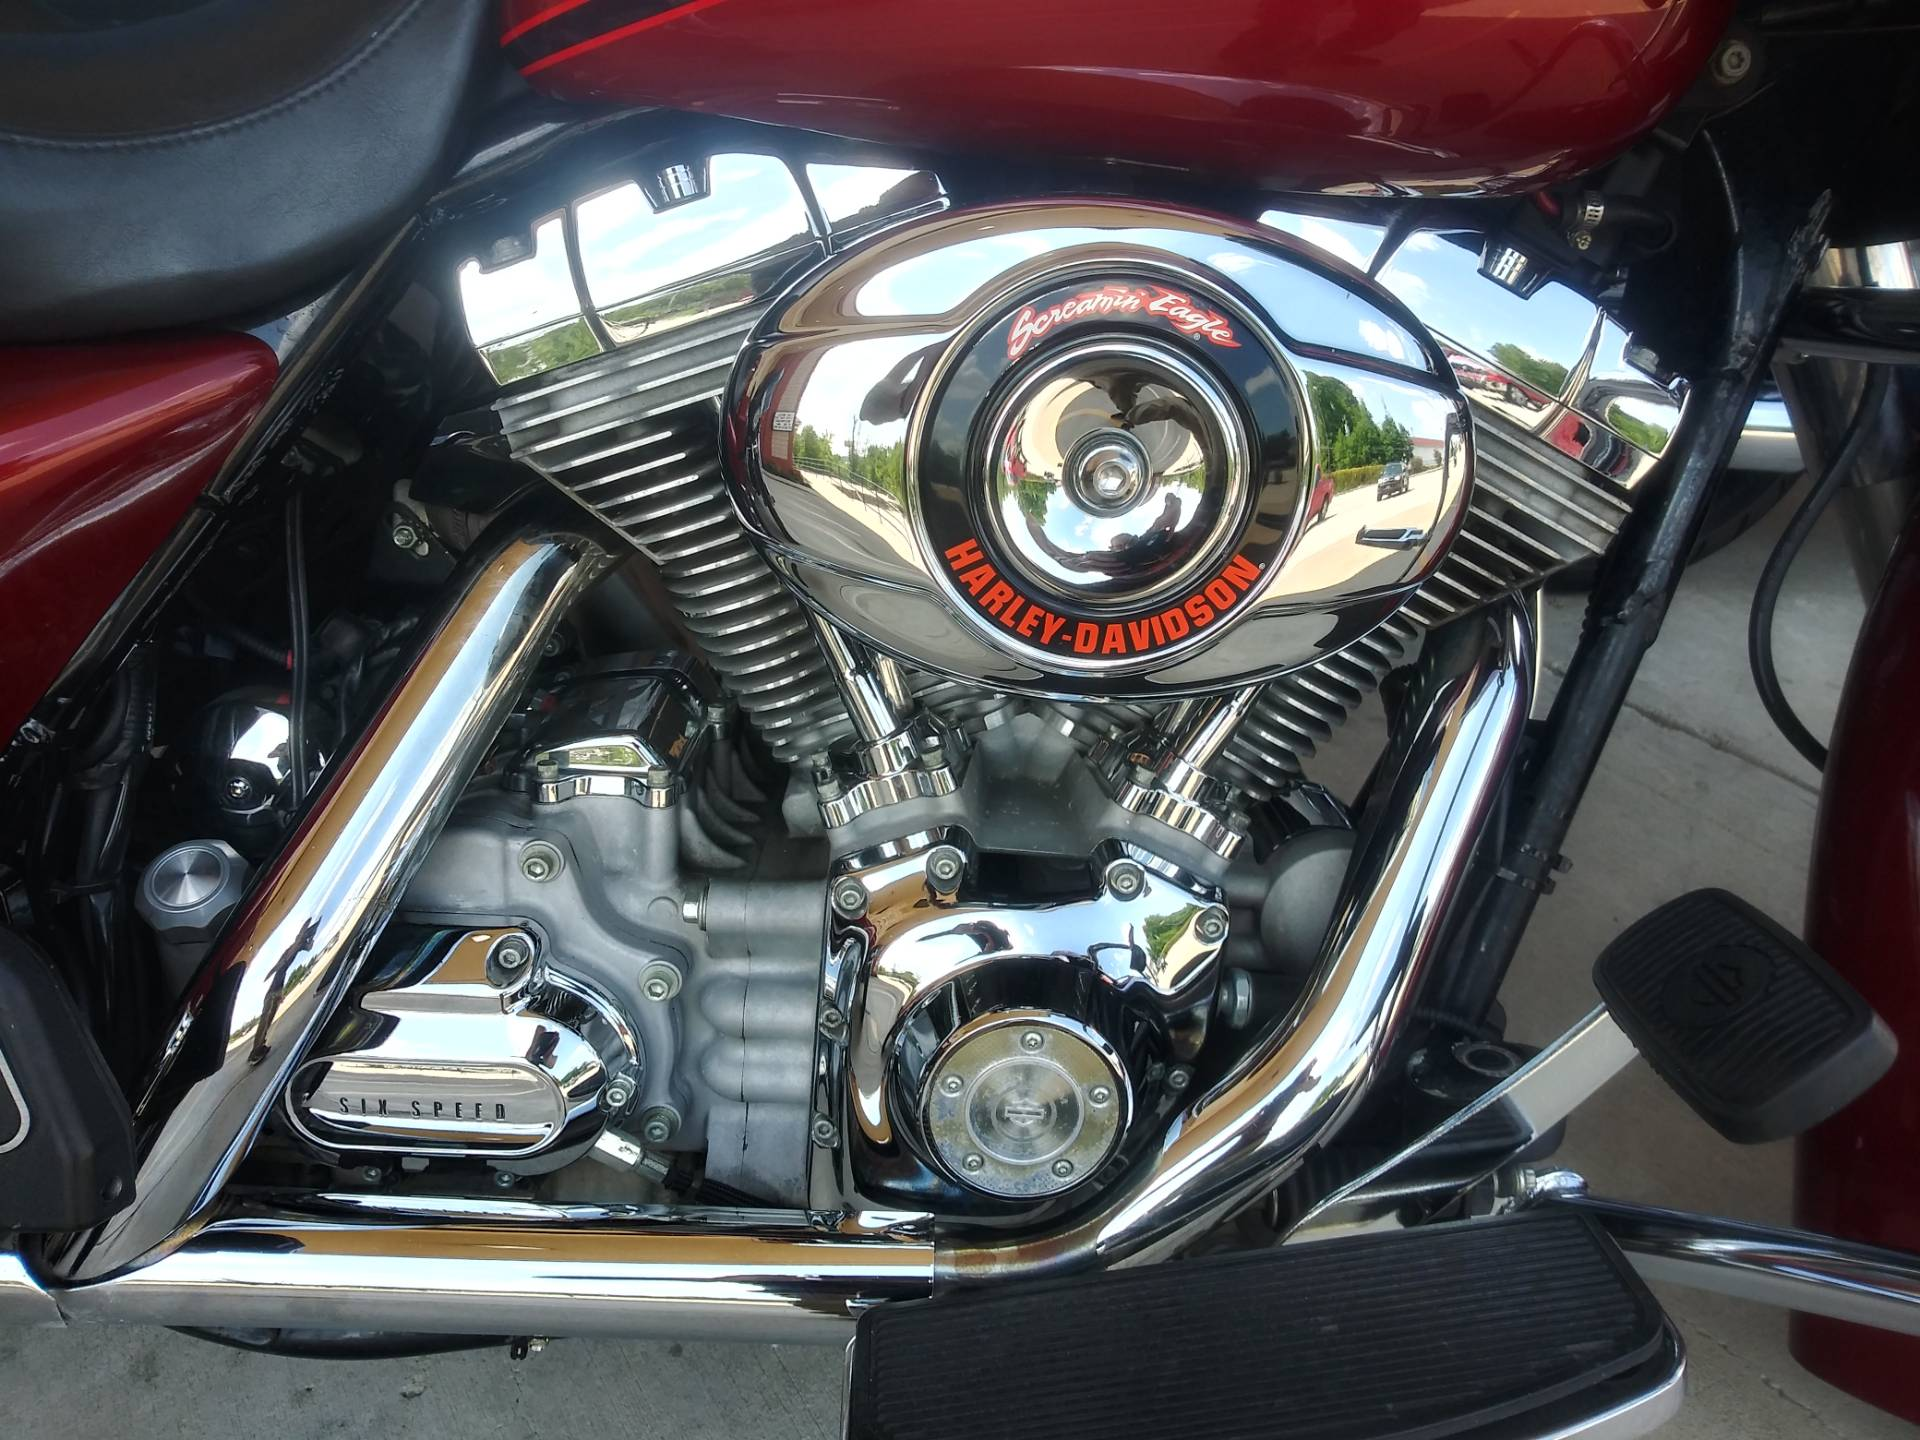 2007 Harley-Davidson FLTR Road Glide® in Knoxville, Tennessee - Photo 3